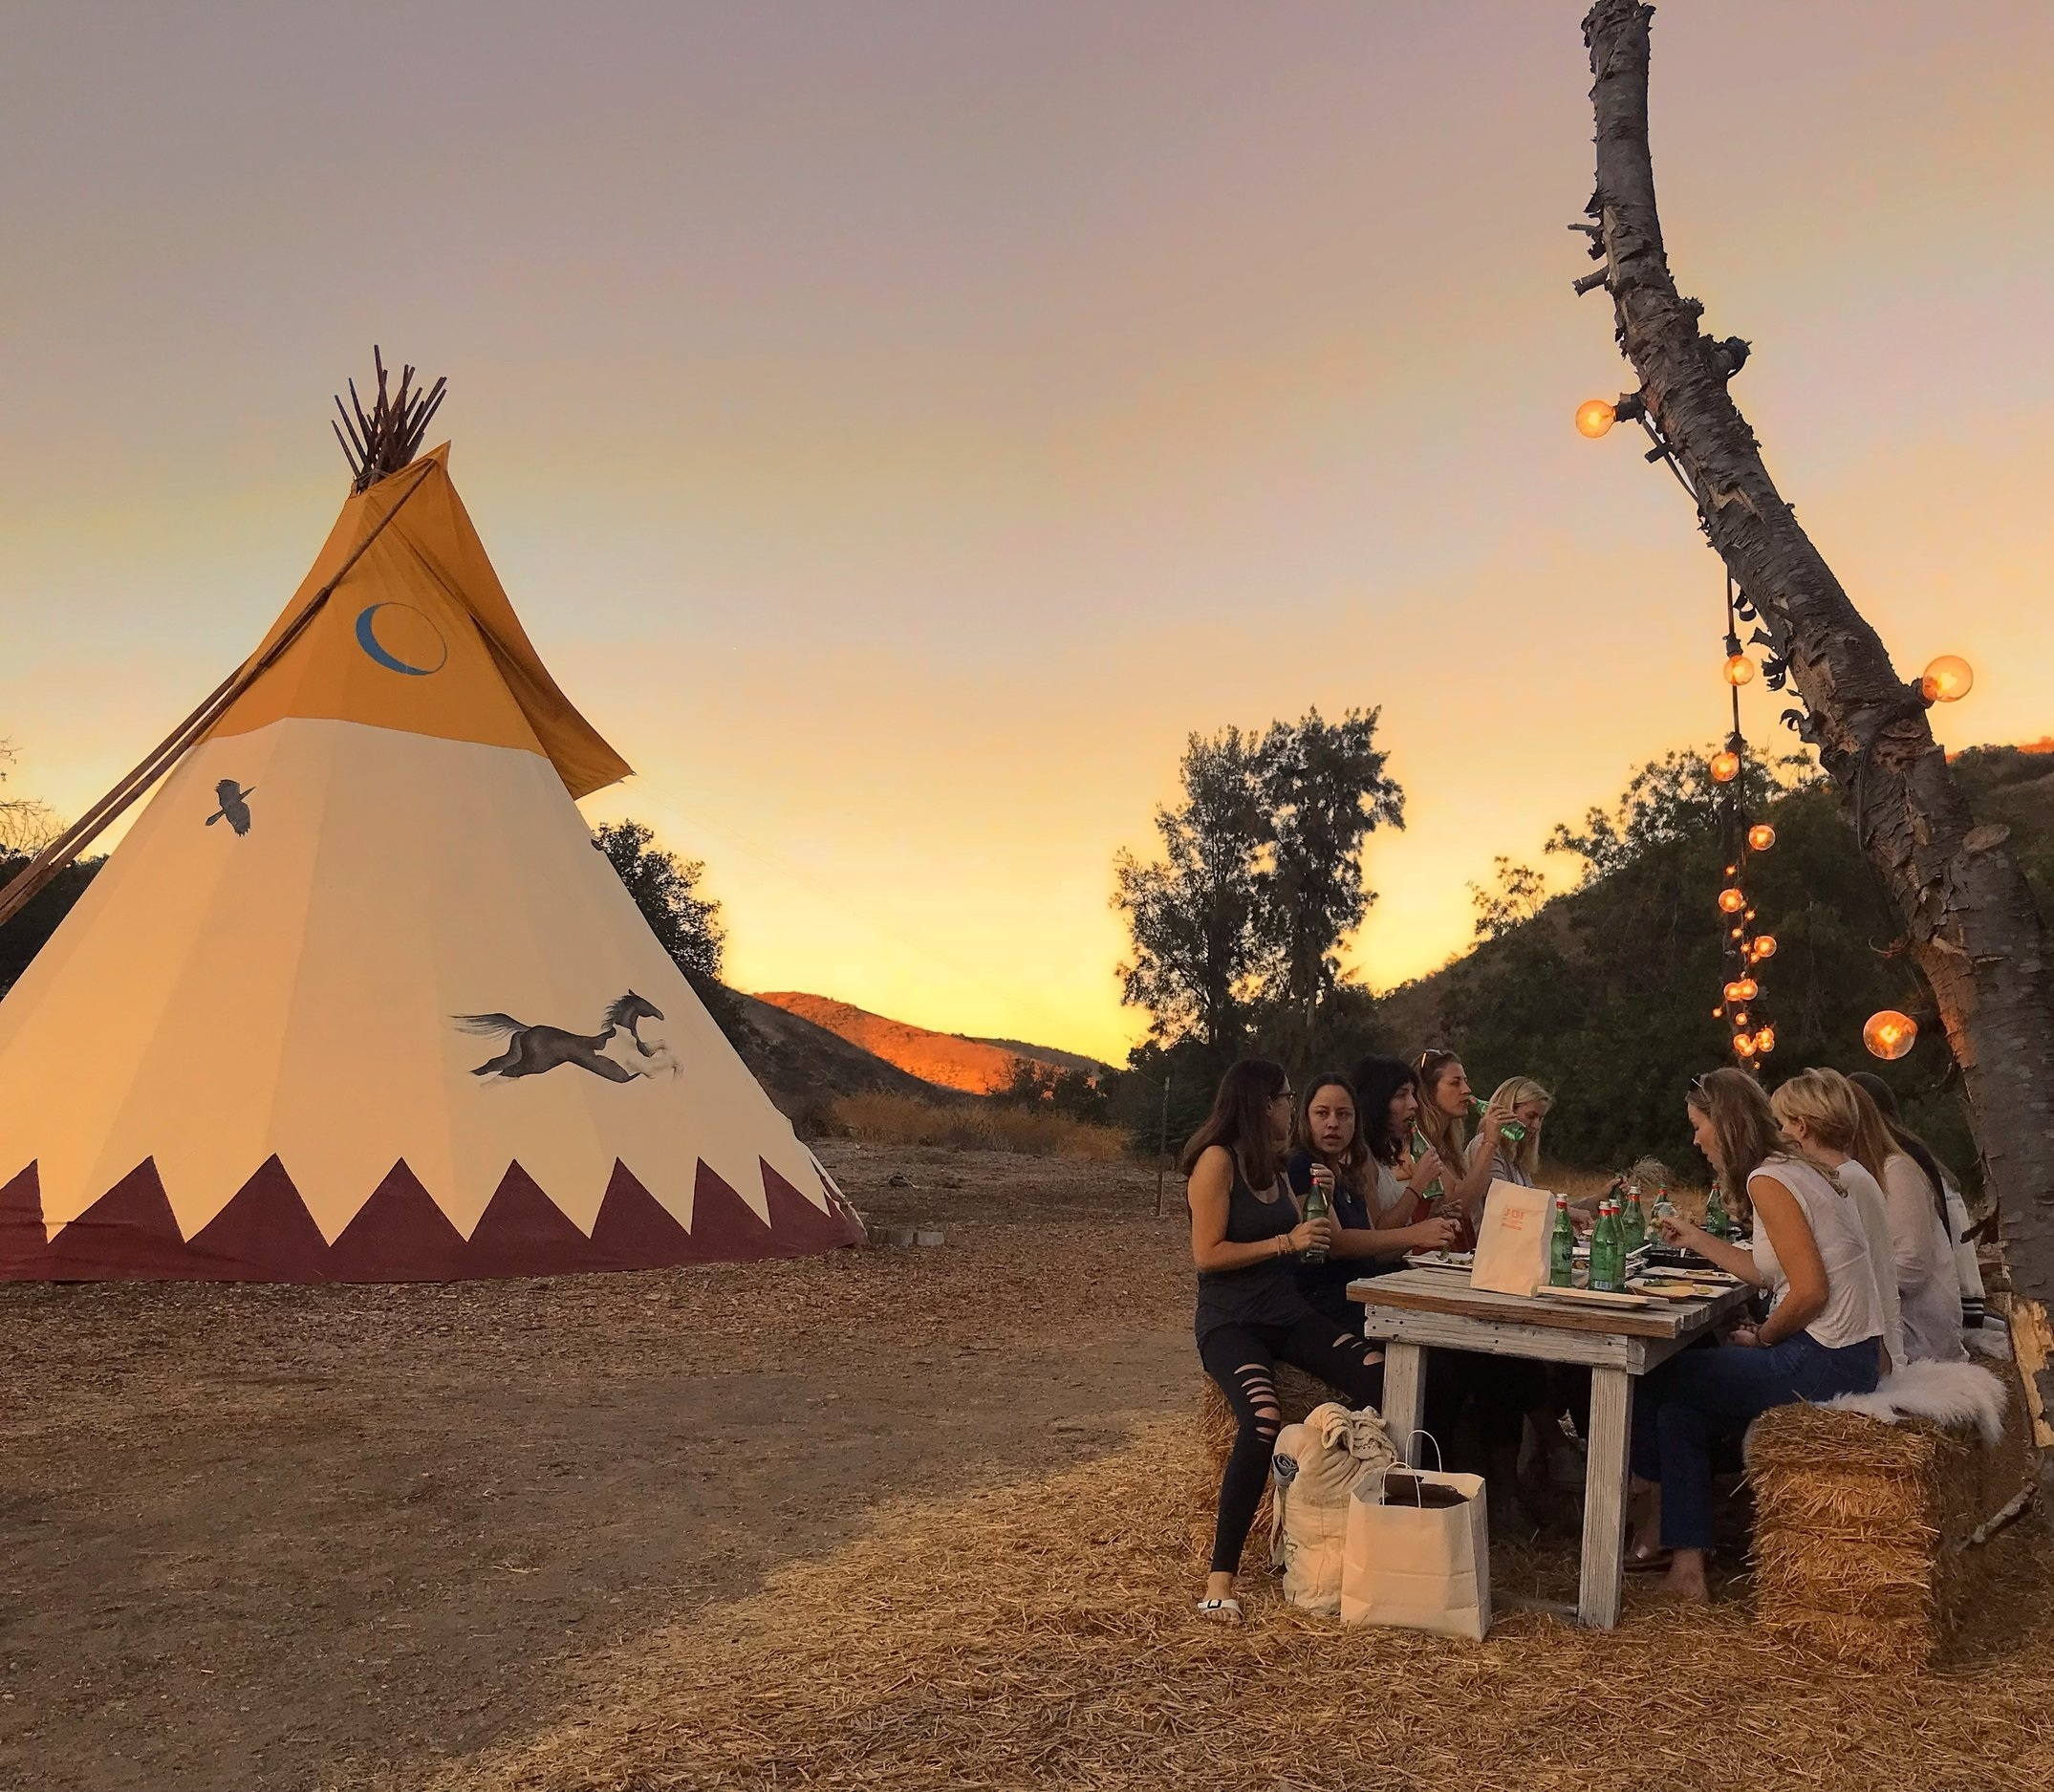 A true Community - The Tipi burned down in the Malibu wildfires of Fall 2018. We thought that was the end of our story. However, our community felt a calling.Without any requests or prompting, they rallied together to raise the funds for a new tipi in just one week so that the healing and transformations and connection to something  greater could continue.